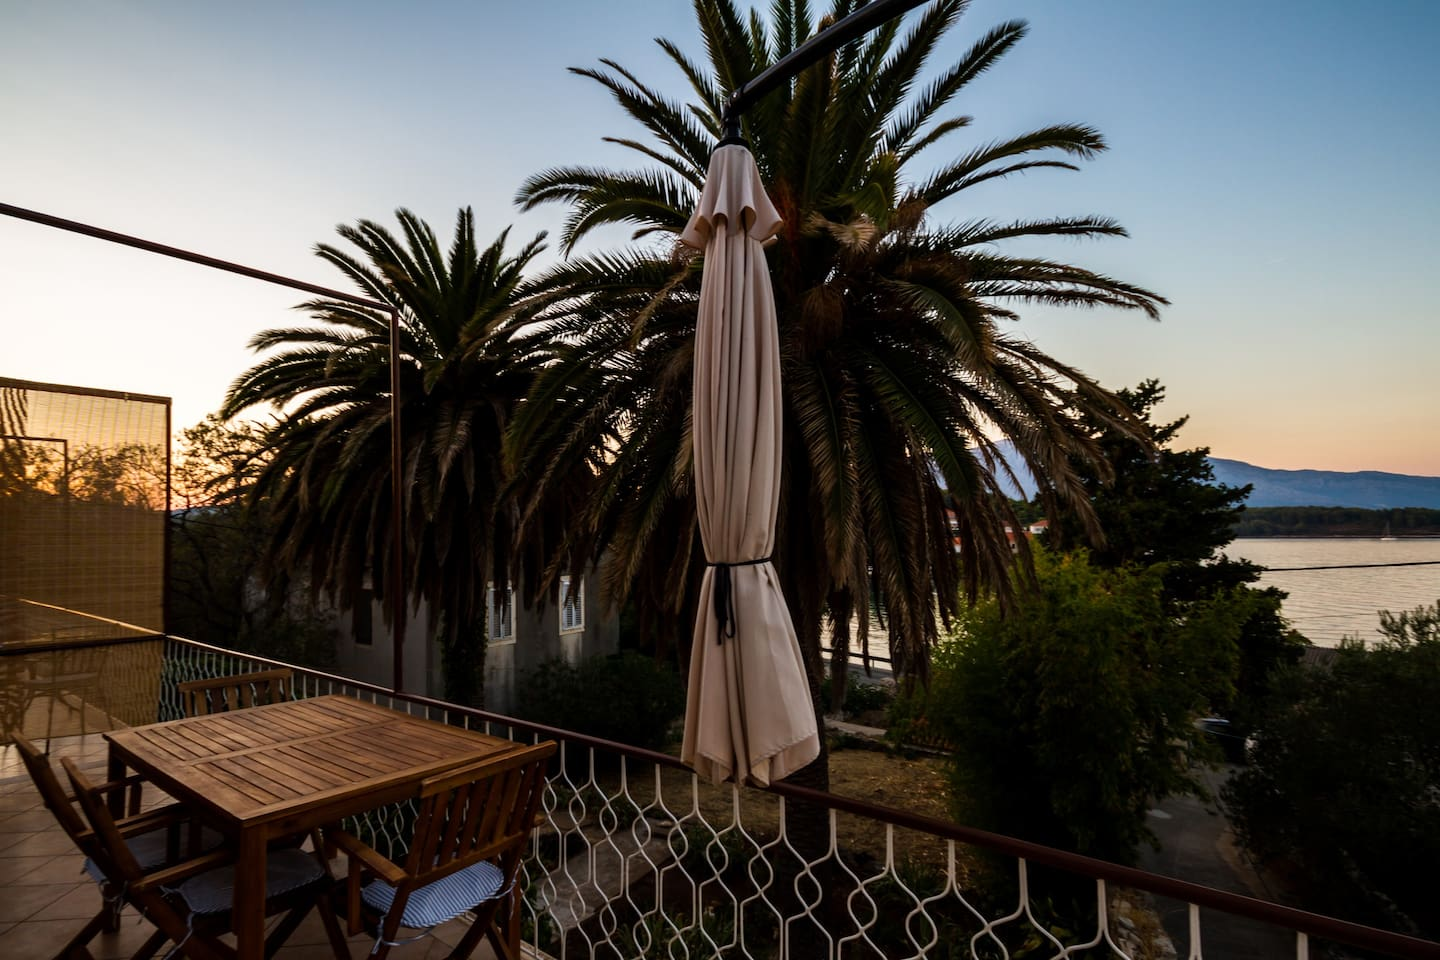 Our terrace with amazing view